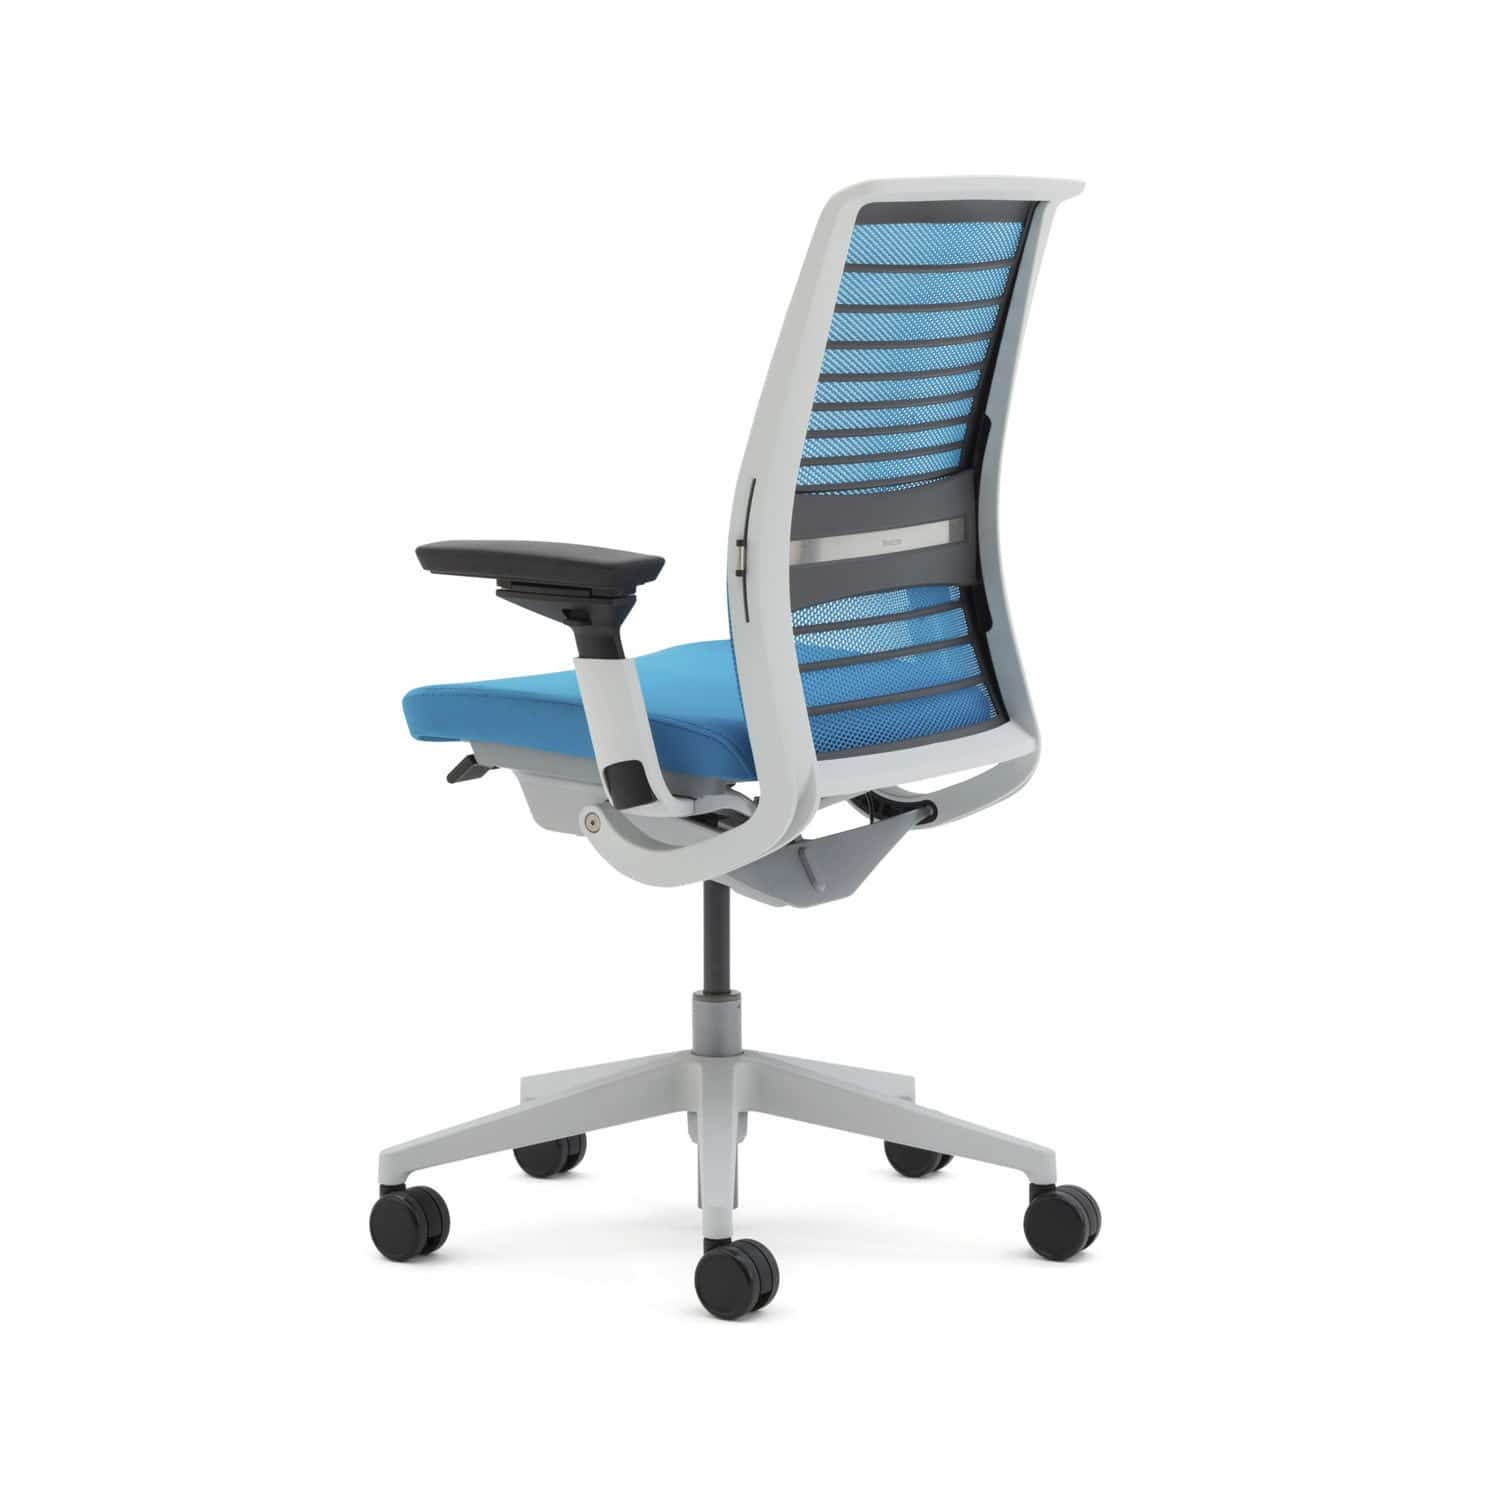 fice chair with armrests on casters Think Nurture